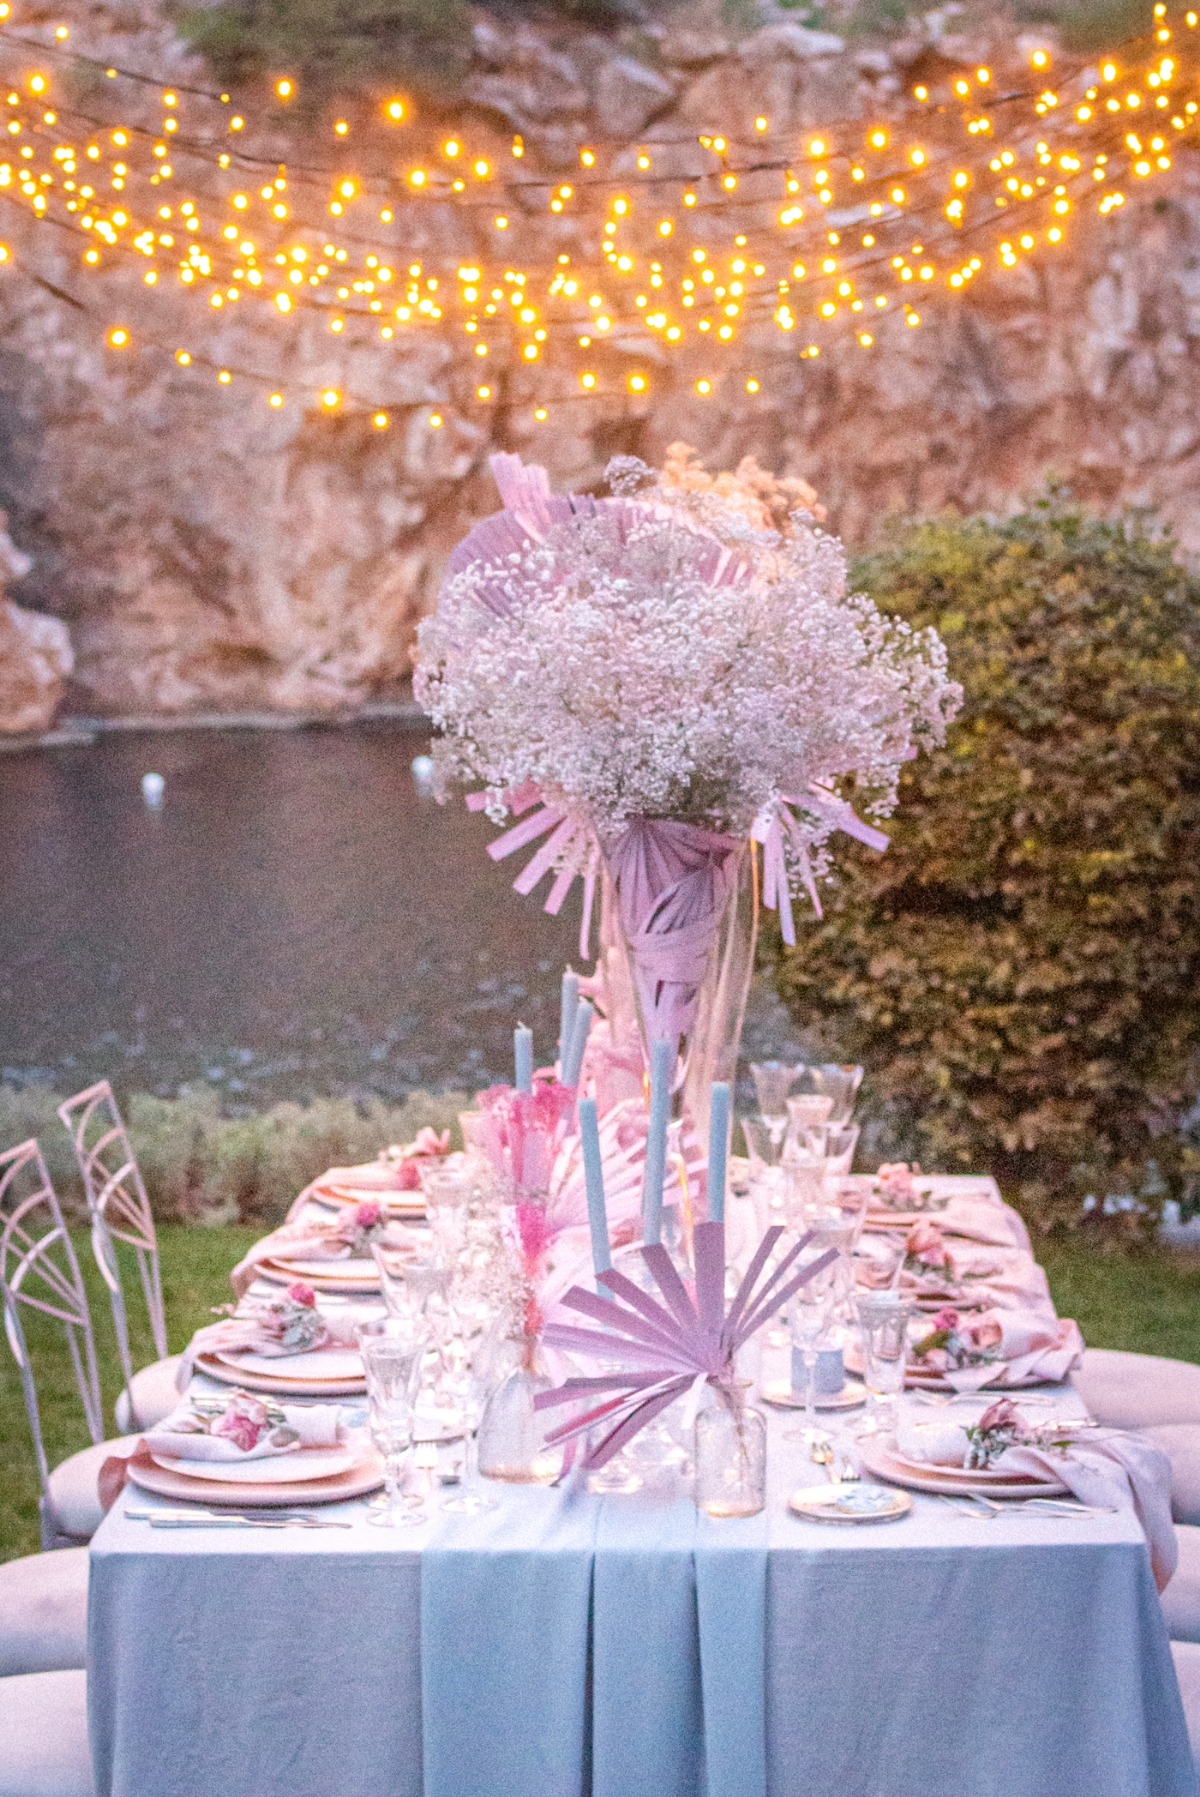 Rosy Dreamscape Lakeside Wedding Inspiration in Greece